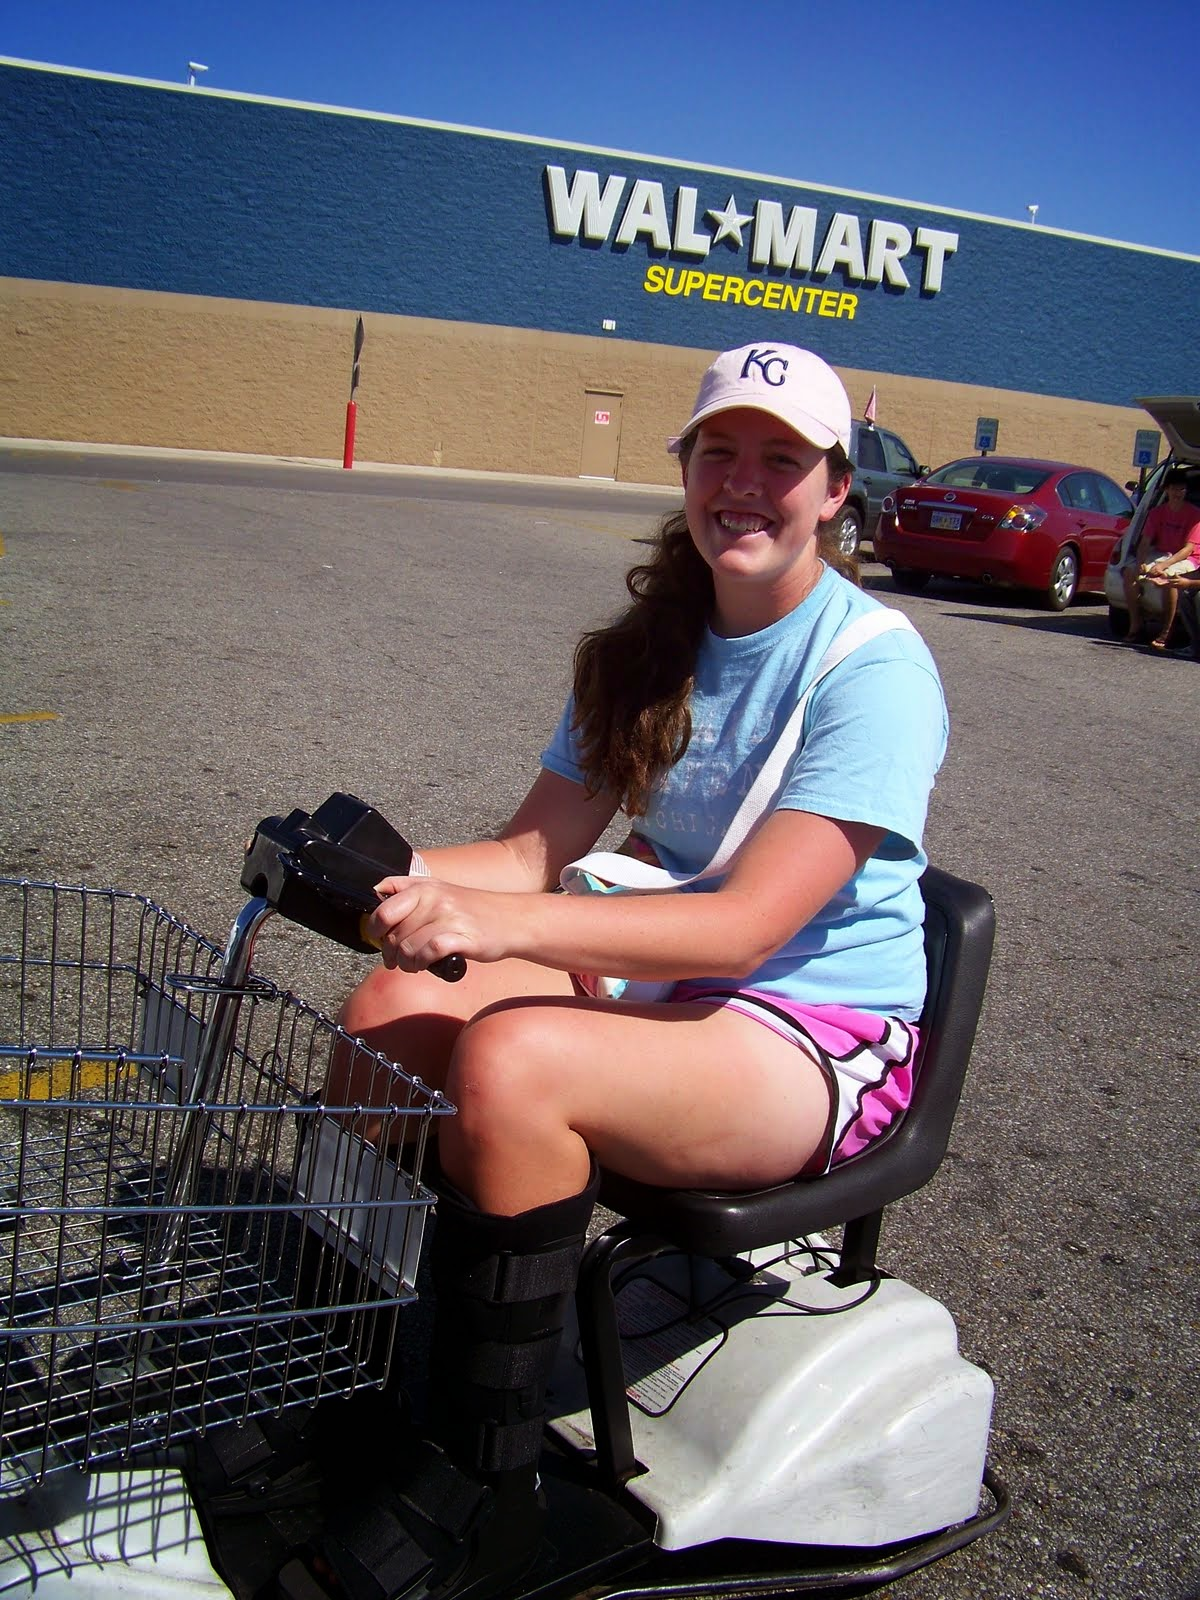 funny pictures of people at walmart 2011 social